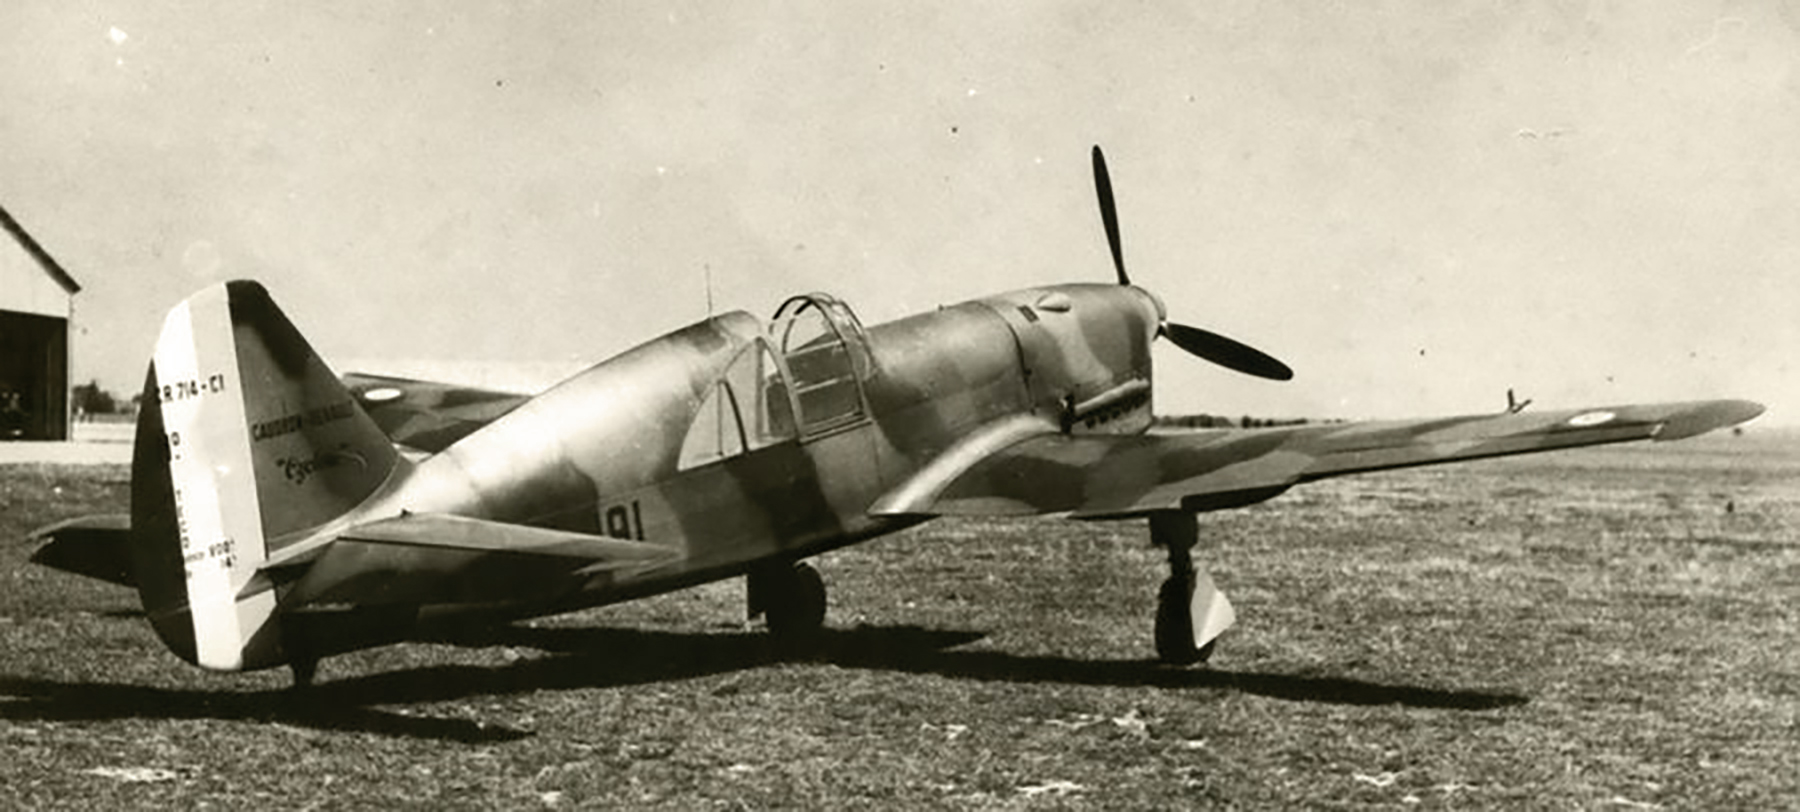 French Airforce Caudron CR 714C1 Cyclone sn8533 coded I 191 France 1940 web 02